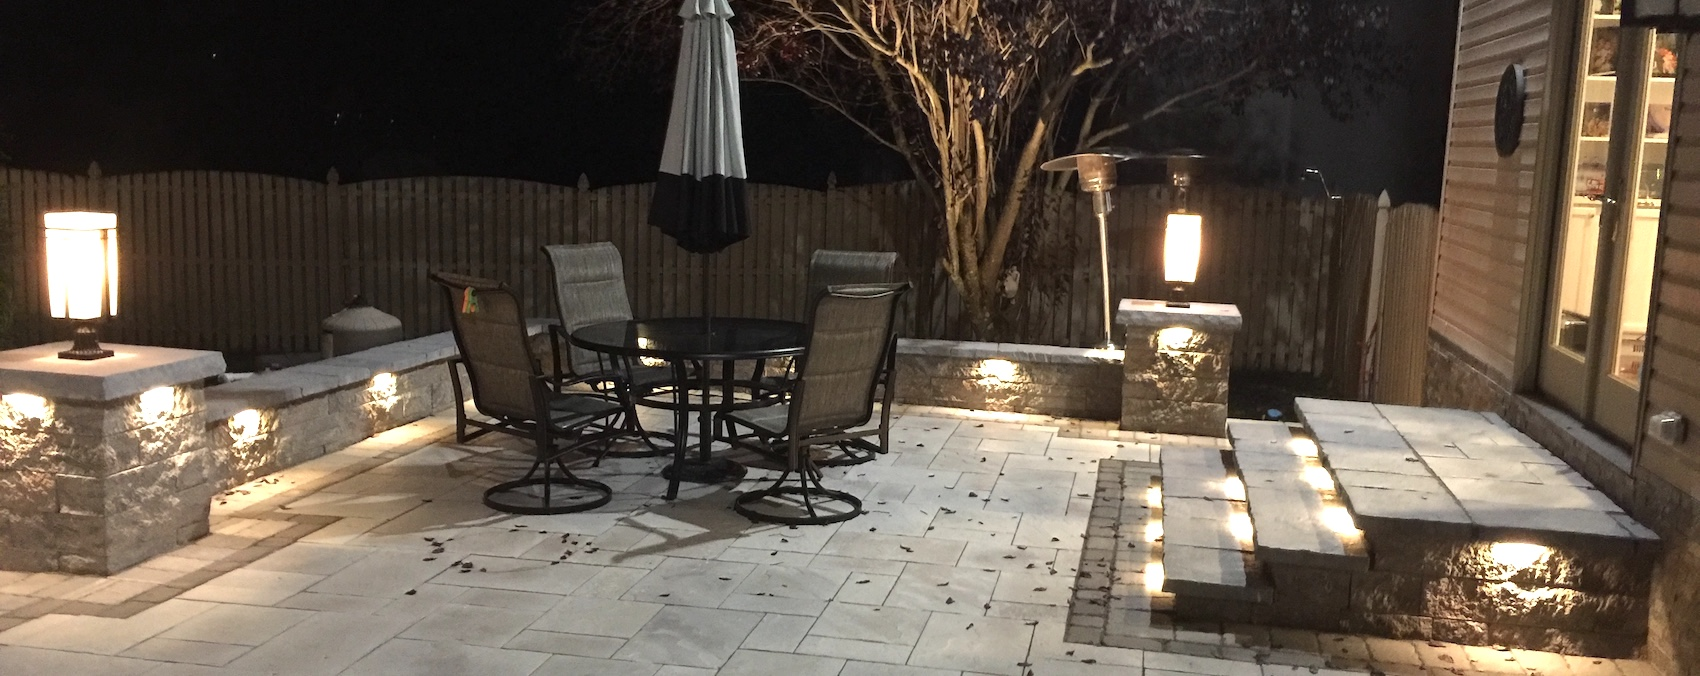 Led Landscape Lighting Nj Hardscape Lighting For Patios